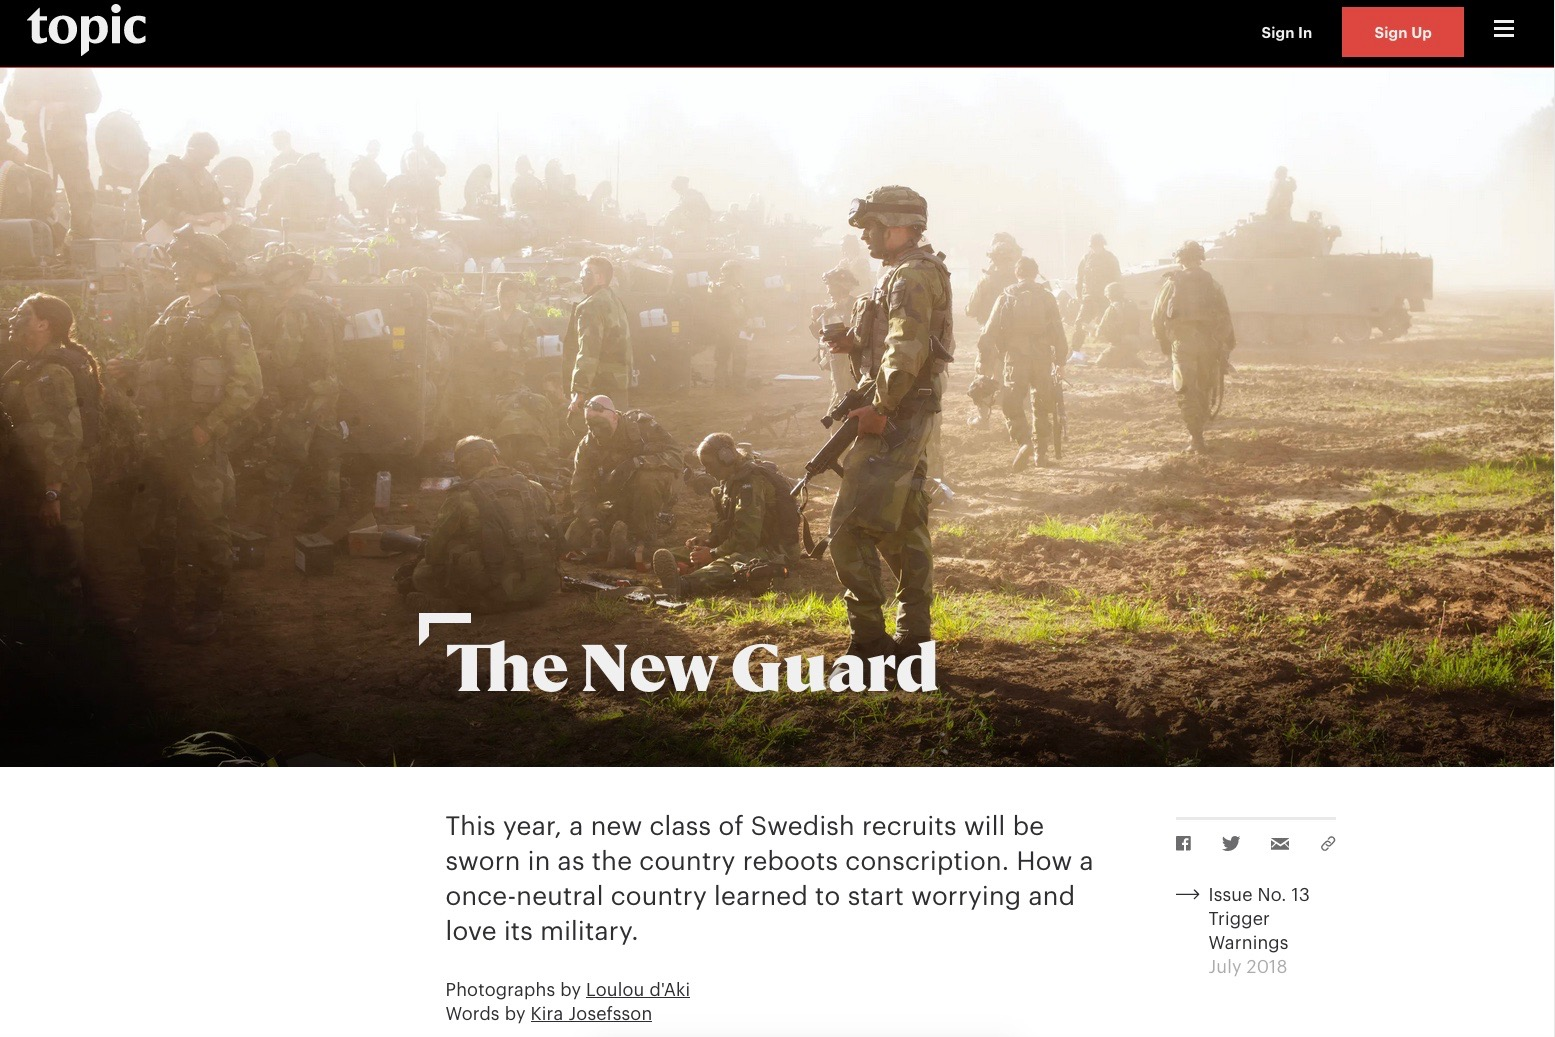 Swedish conscripts standing on a field in hazy light, photographed by Loulou d'Aki.